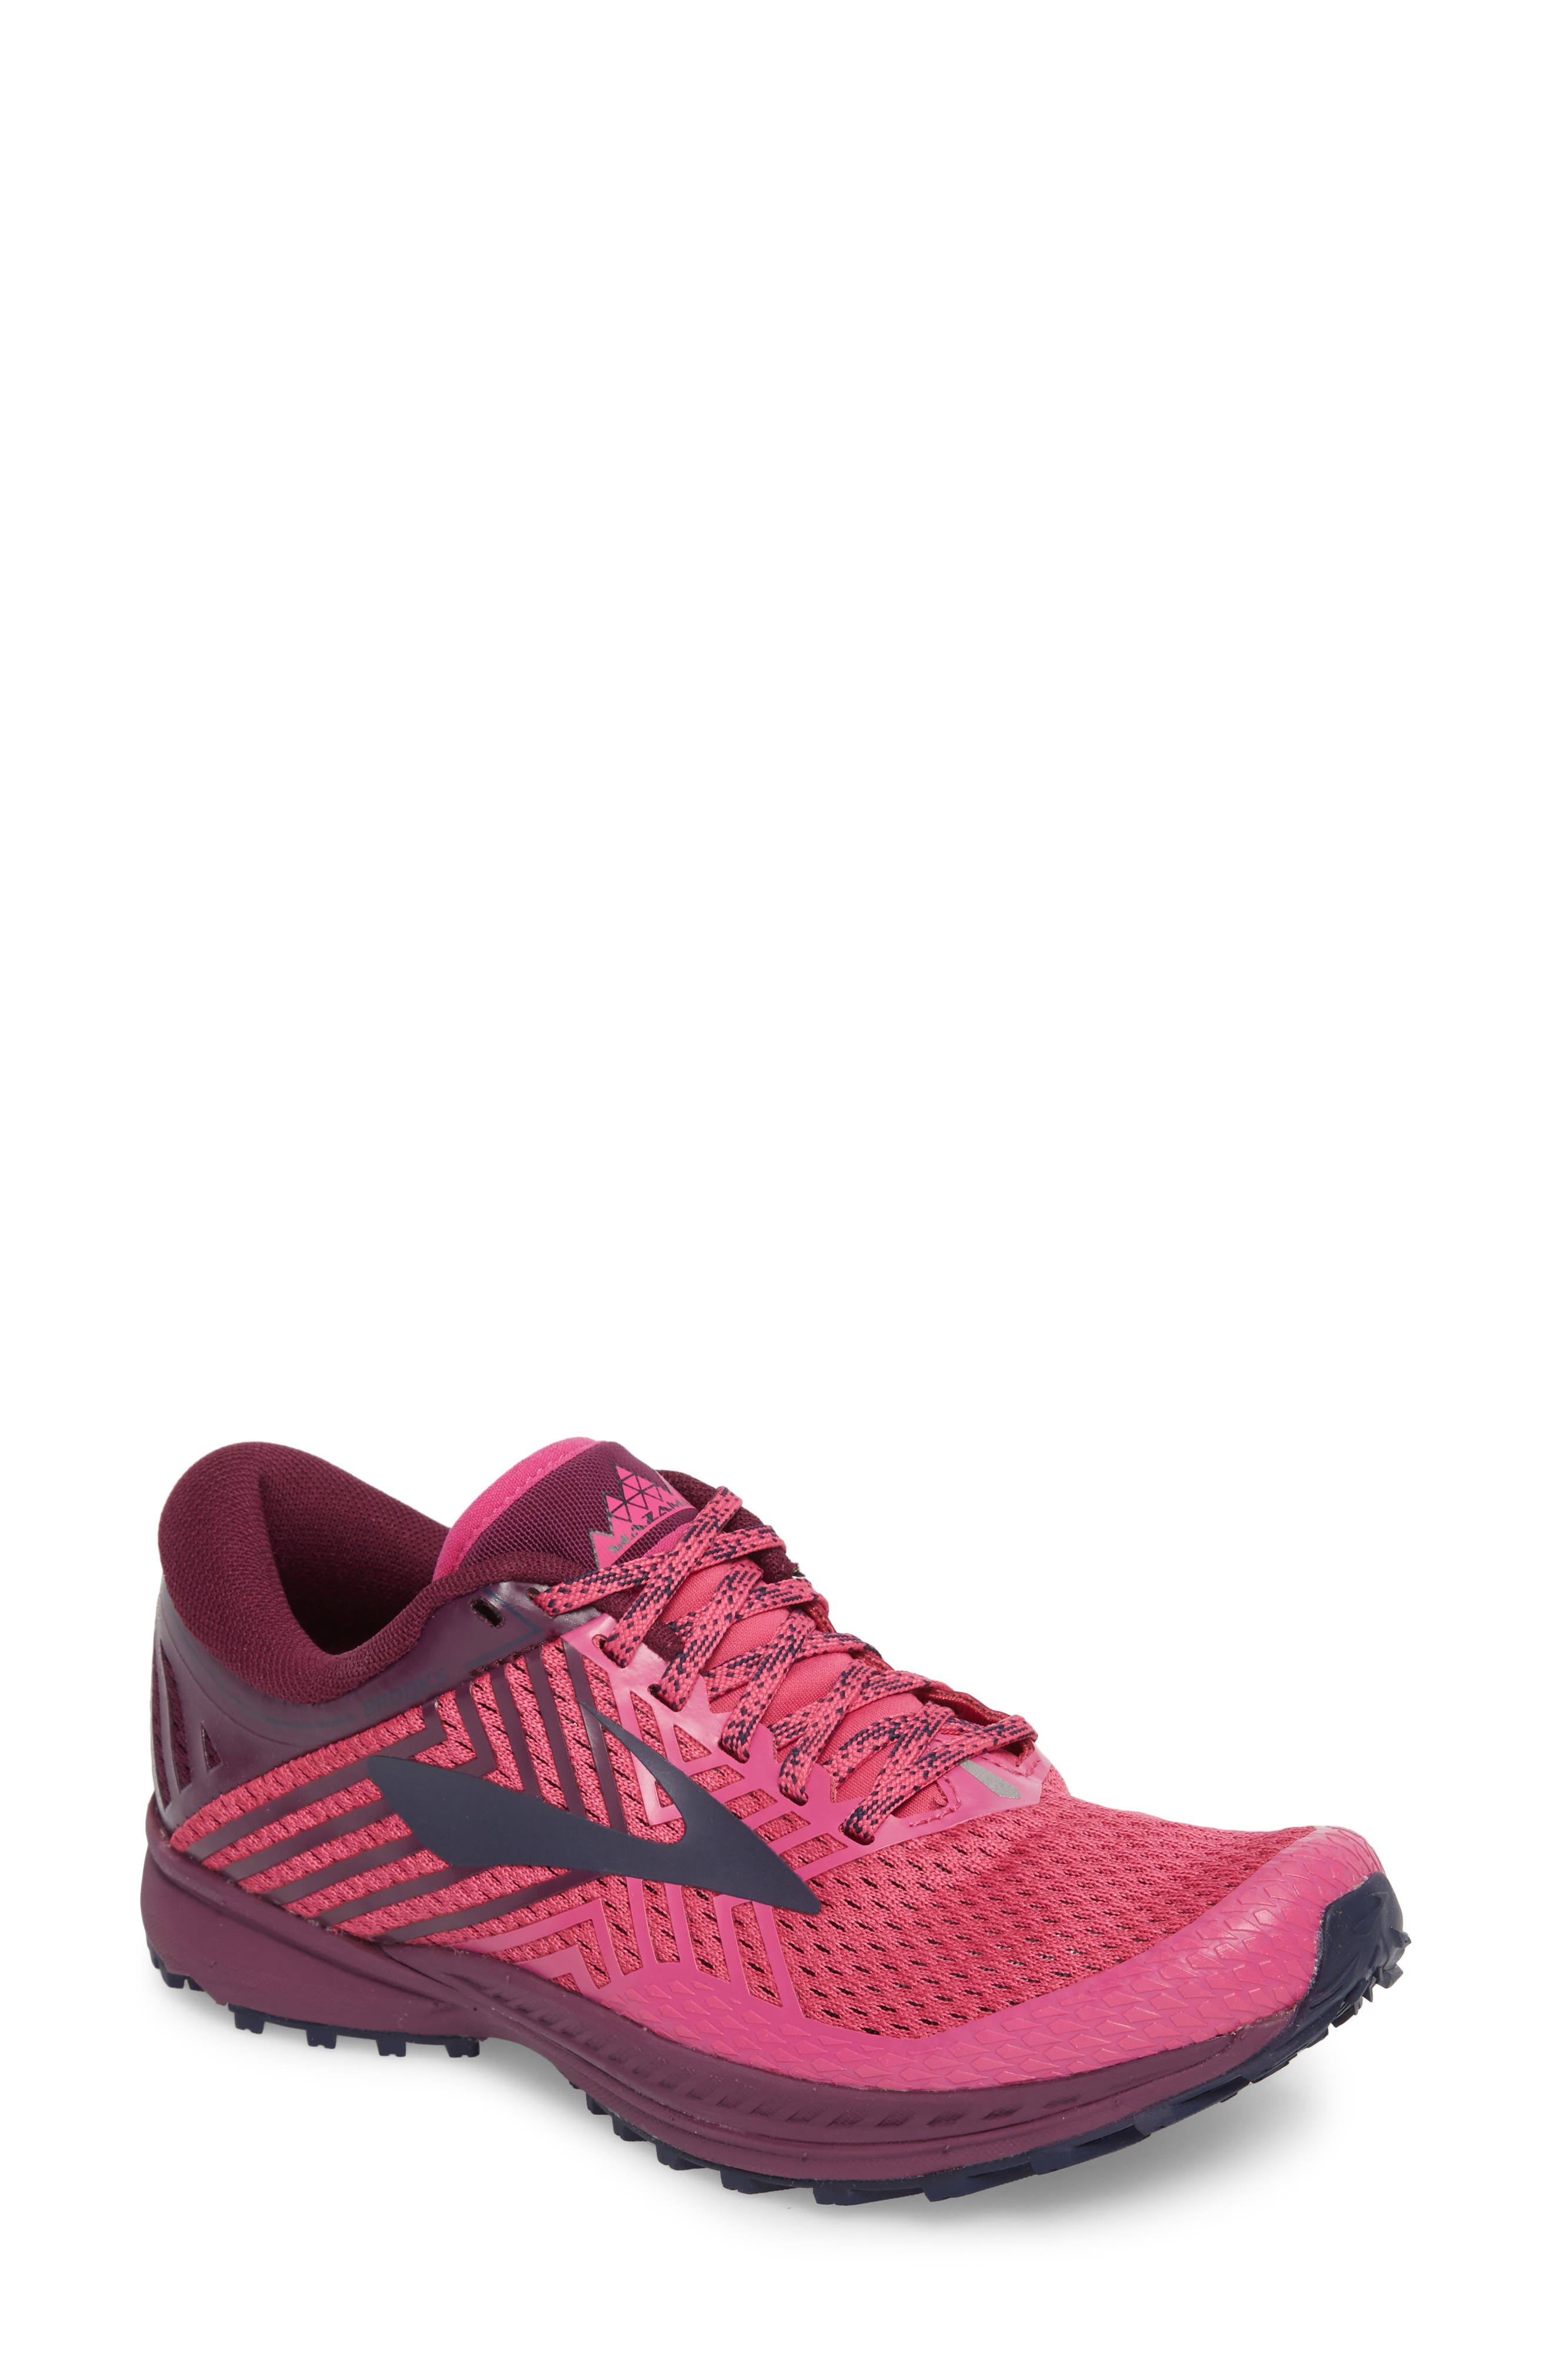 Alternate Image 1 Selected - Brooks Mazama 2 Trail Running Shoe (Women)